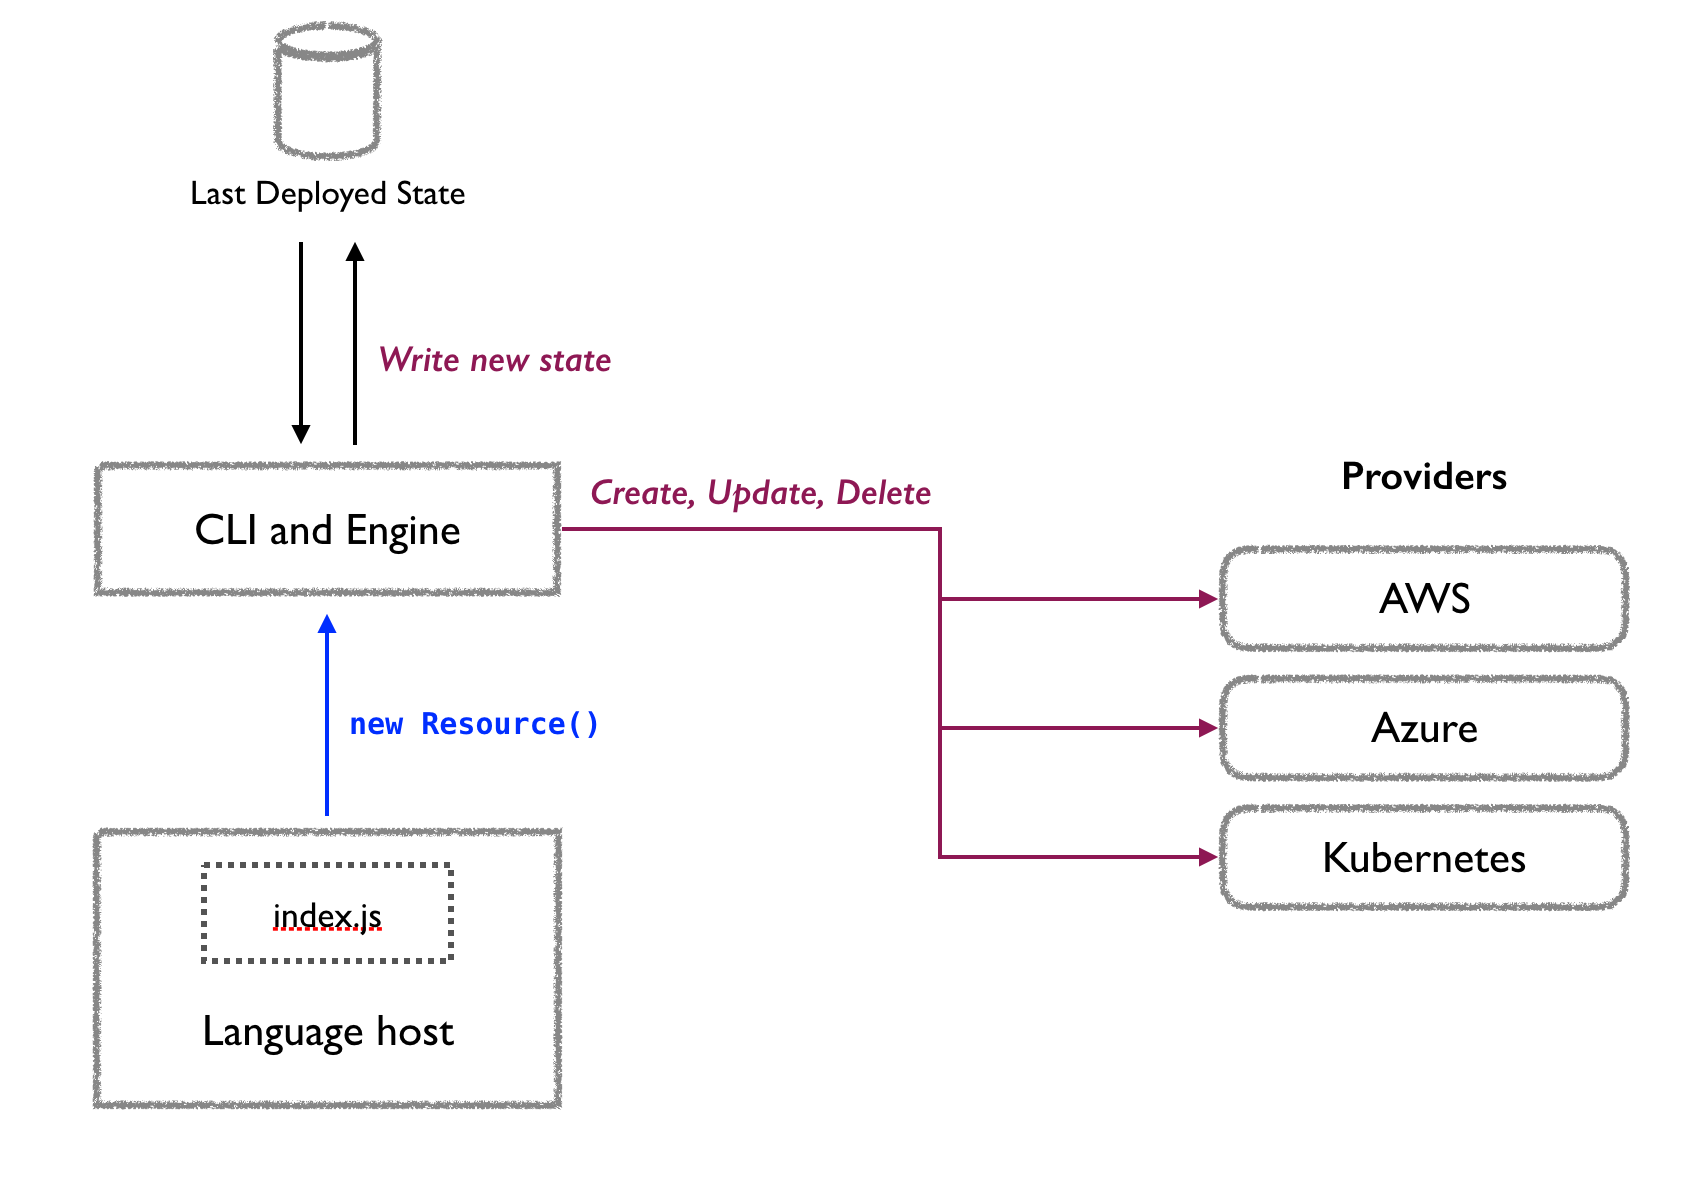 Pulumi engine and providers